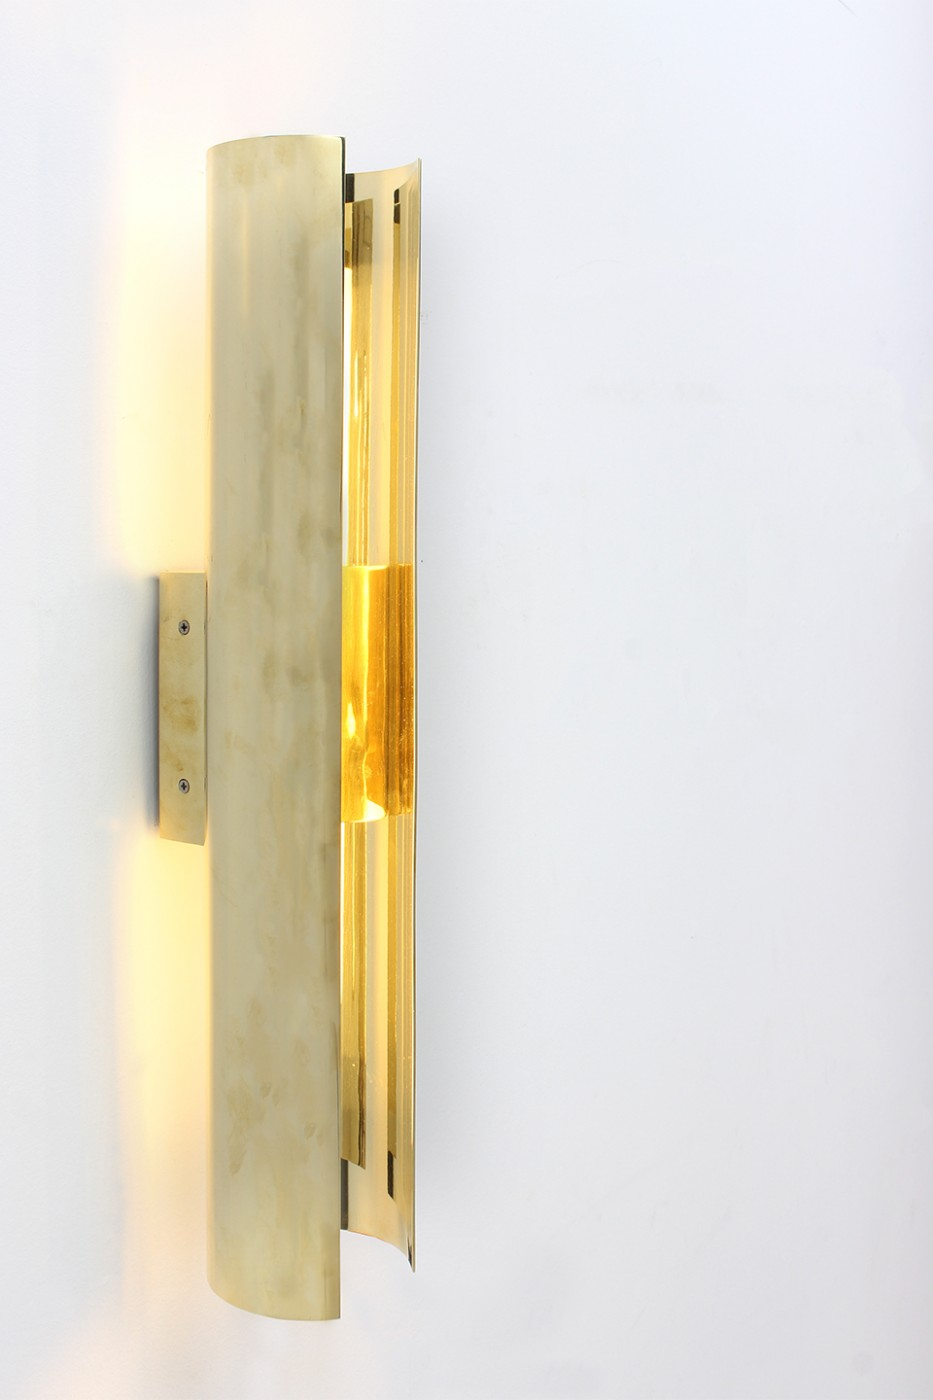 Marco Bevilacqua Scipioni Brass Applique for Gate 5 Gallery